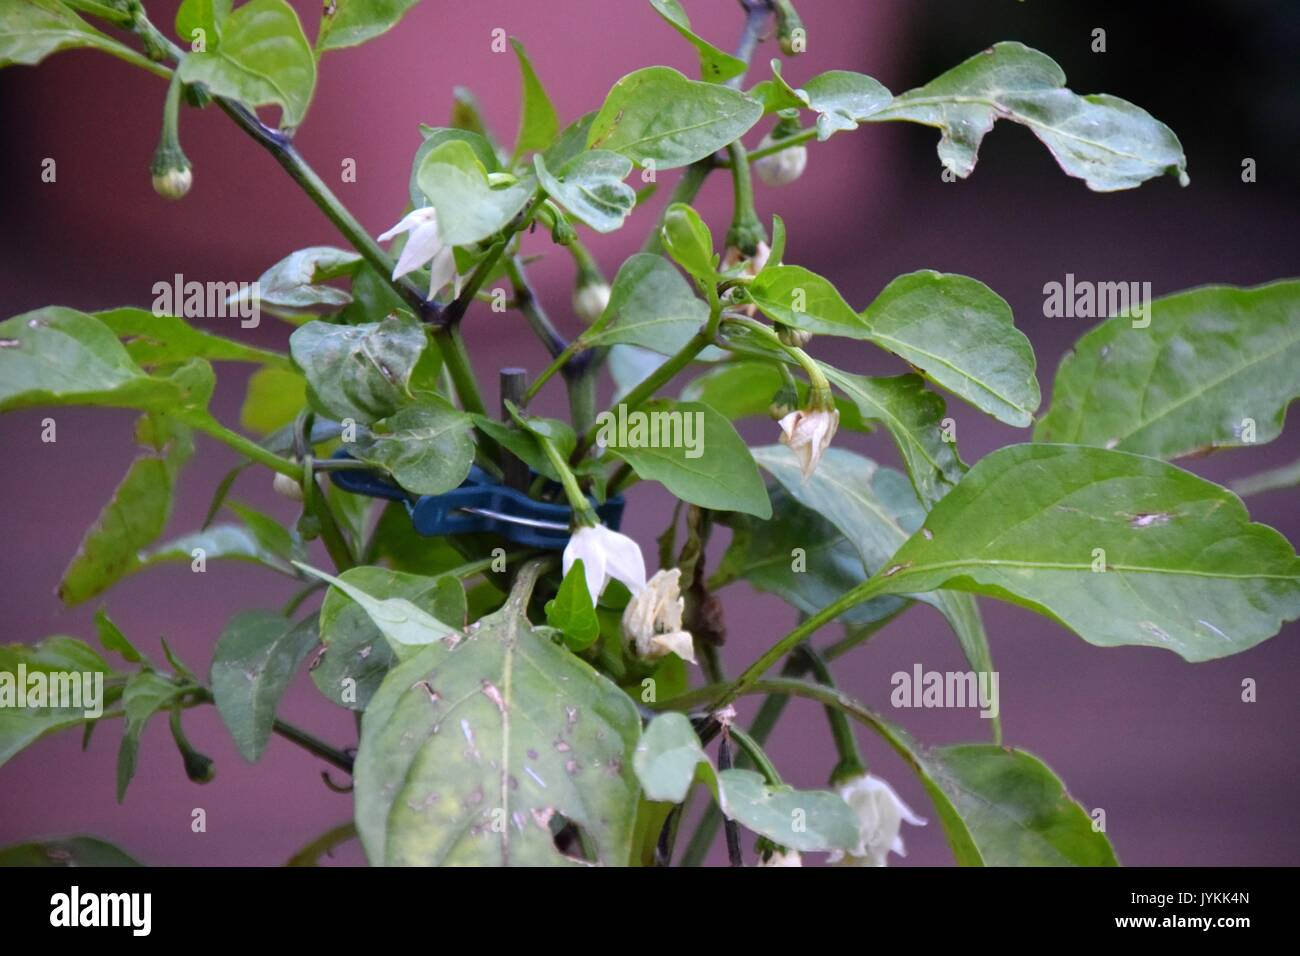 Capsicum, peppers, Capsiceae, Chili peppers, Chilis, red and green bell pepper, bell pepper, capsicum annuum - Stock Image